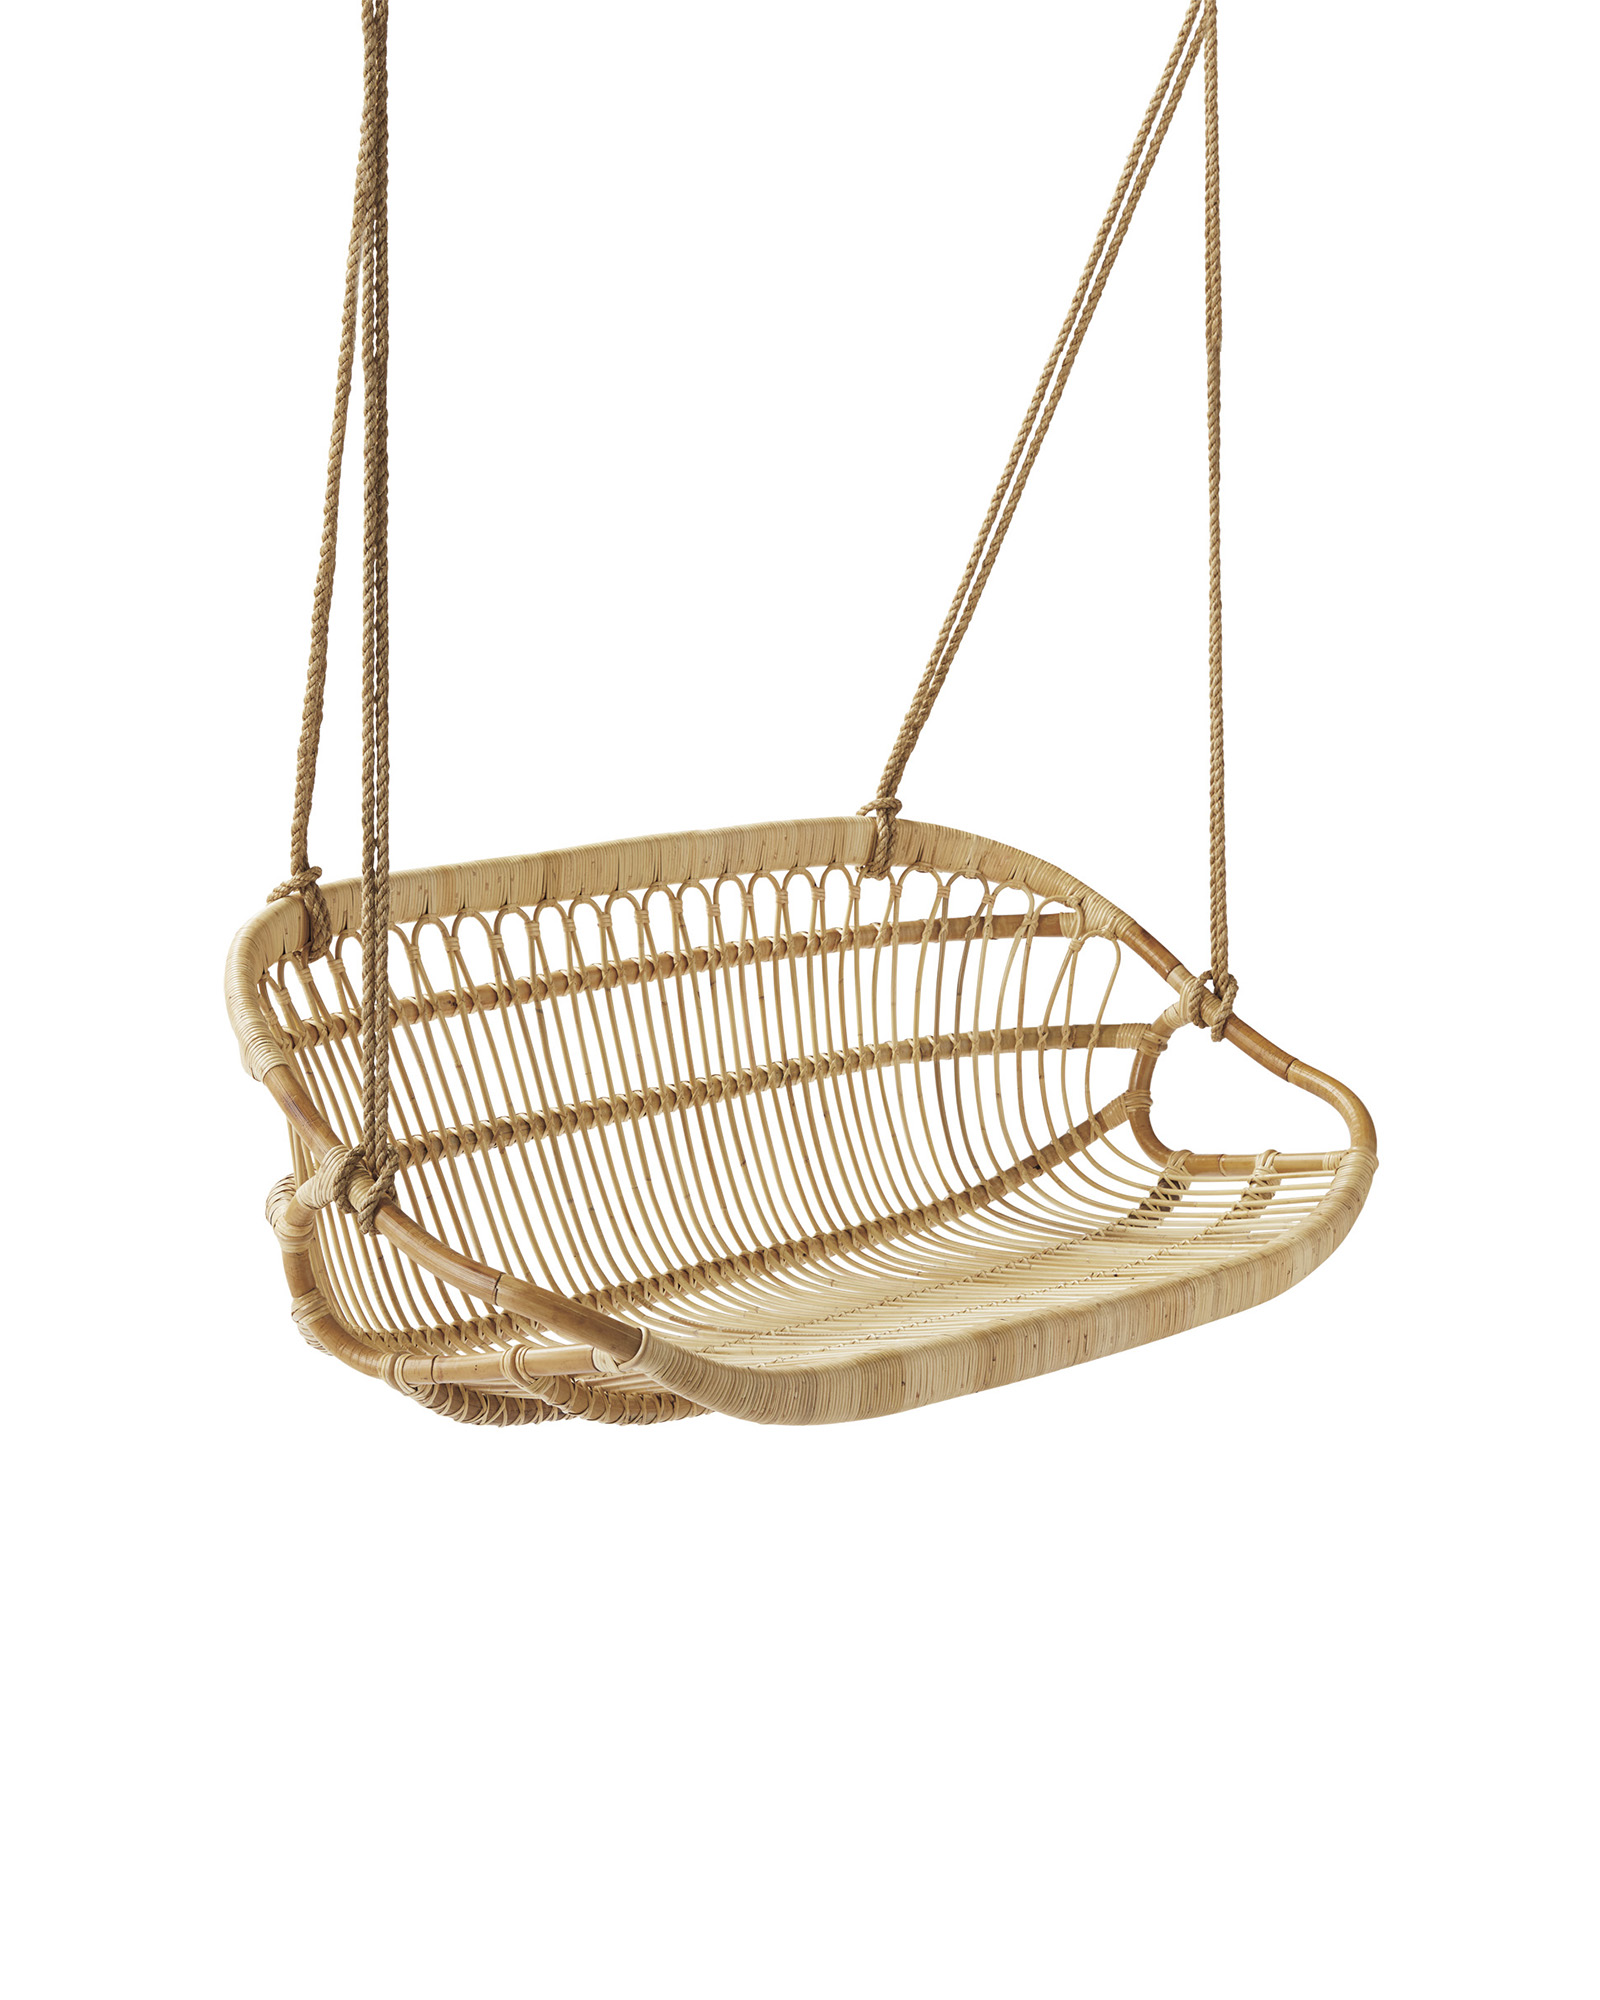 Furn_Hanging_Outdoor_Rattan_Bench_Natural_0Angle_MV_Crop_OL.jpg